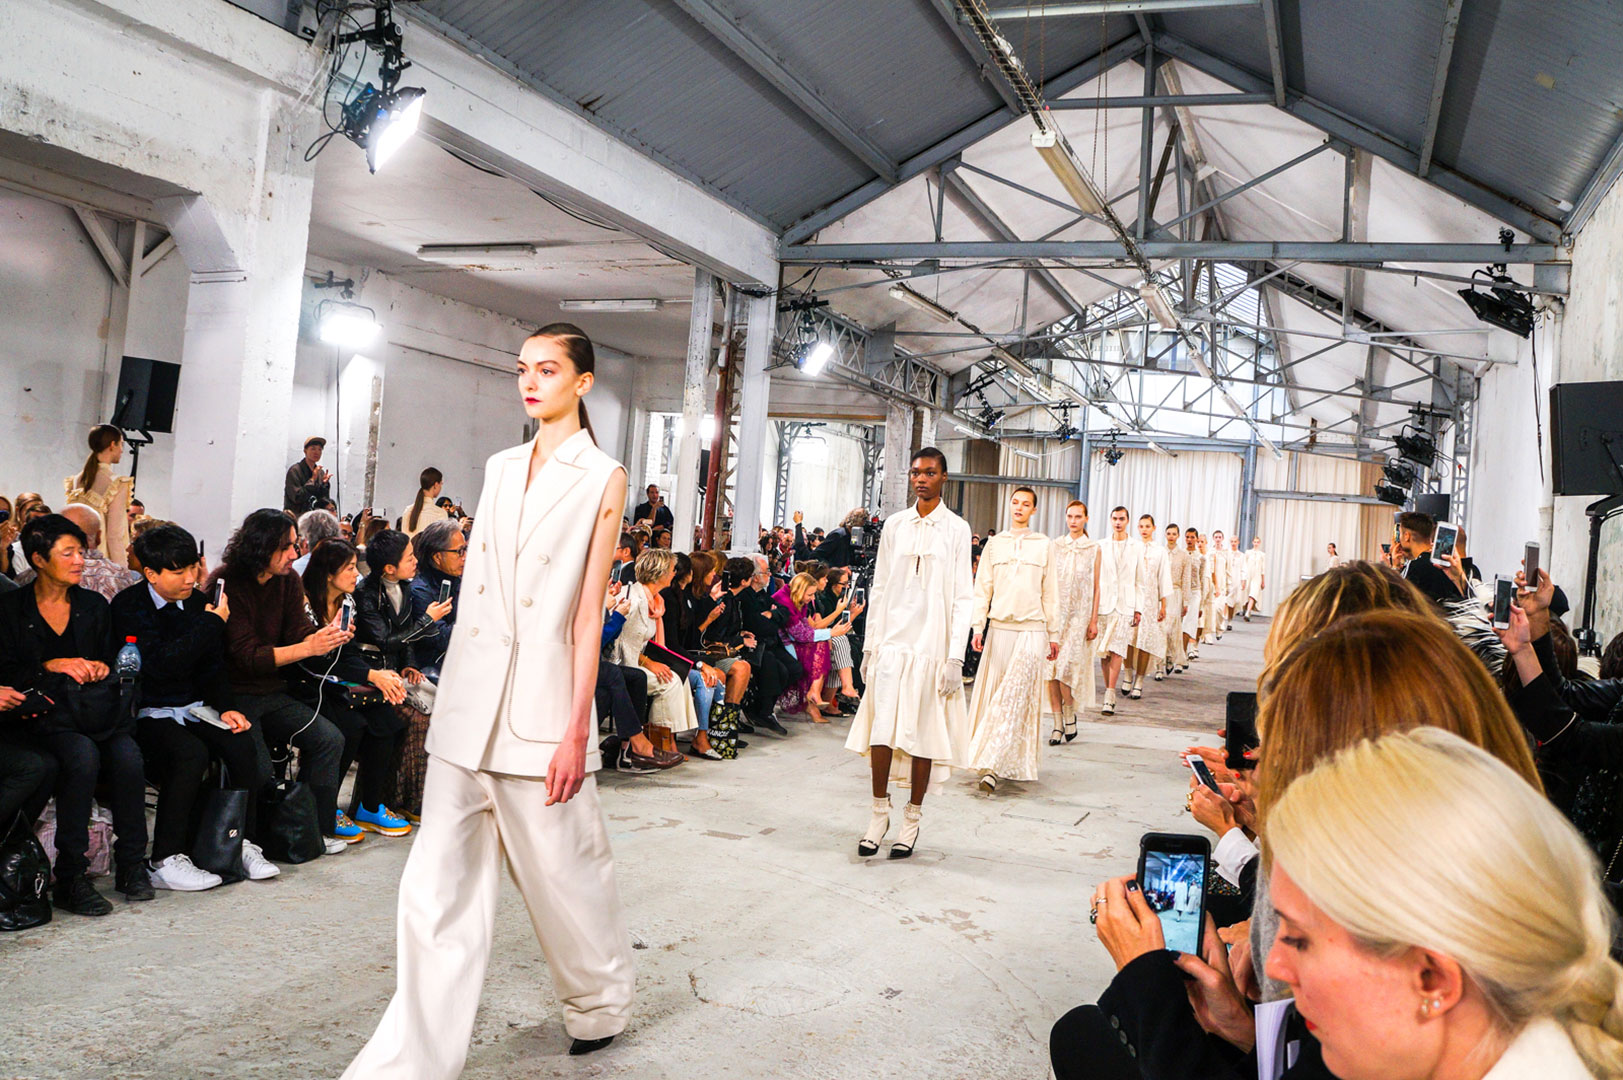 my-paris-fashion-week-diary-paris-by-polina-paraskevopoulou-all-rights-reserved-16